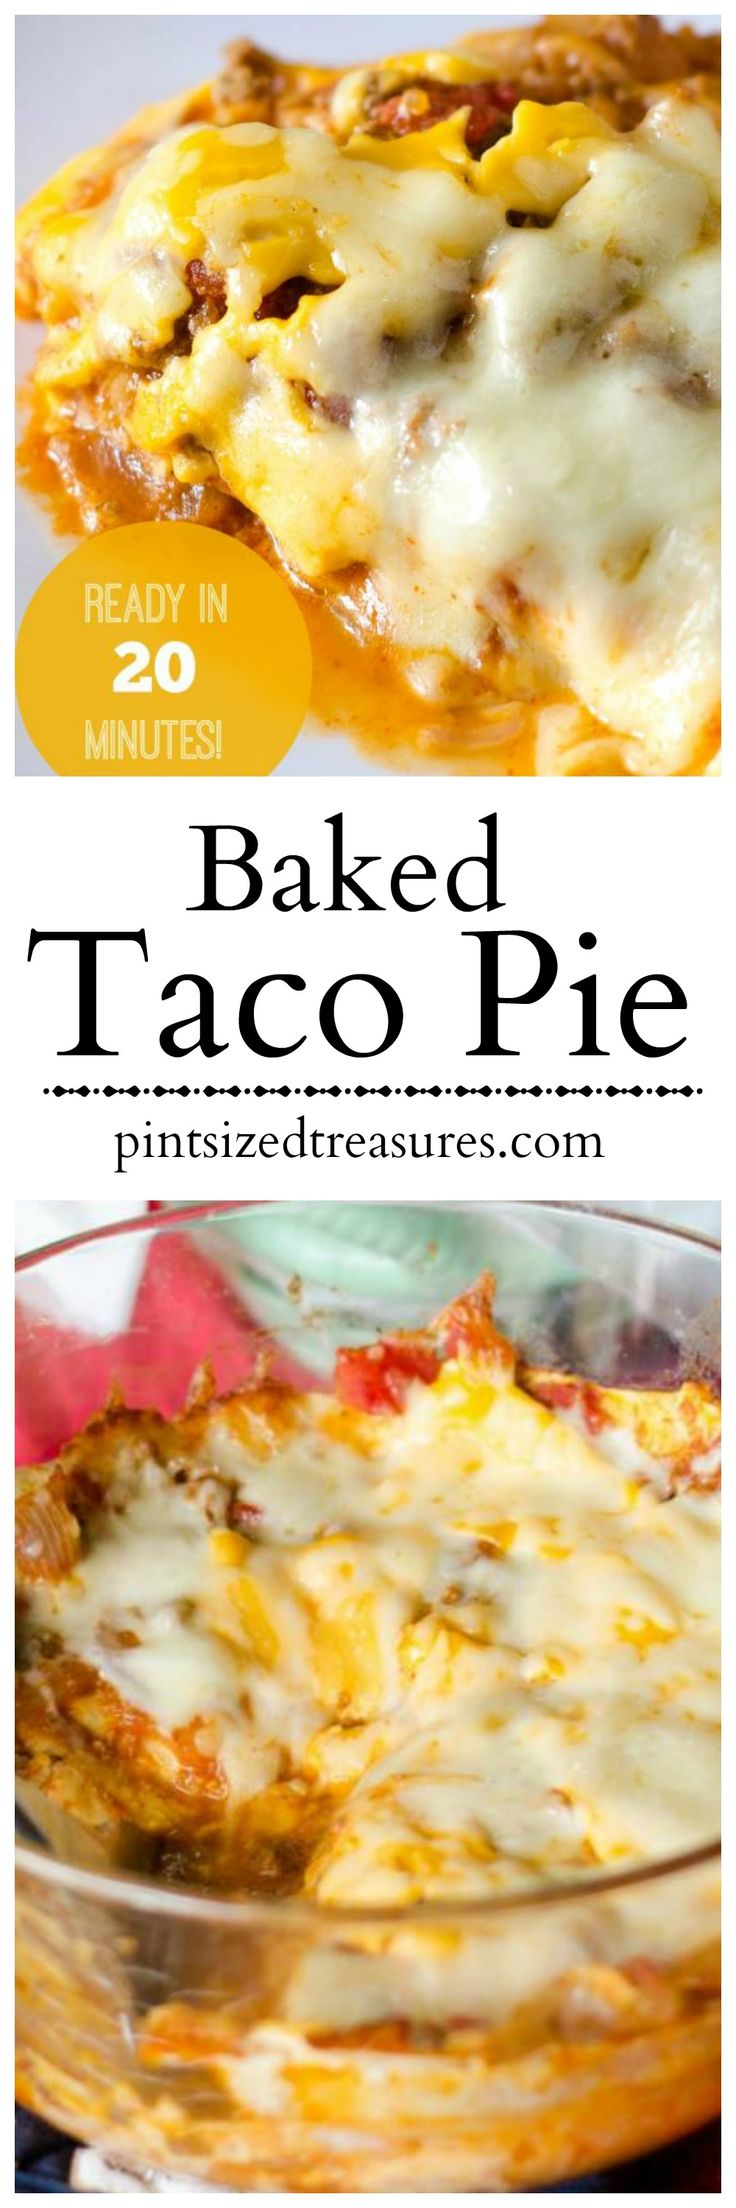 Layers of cheese, sauce and spices create the perfect taco pie that's a super quick and easy meal idea for your family. Enjoy this easy recipe that's sure to become your family's favorite way to eat tacos!